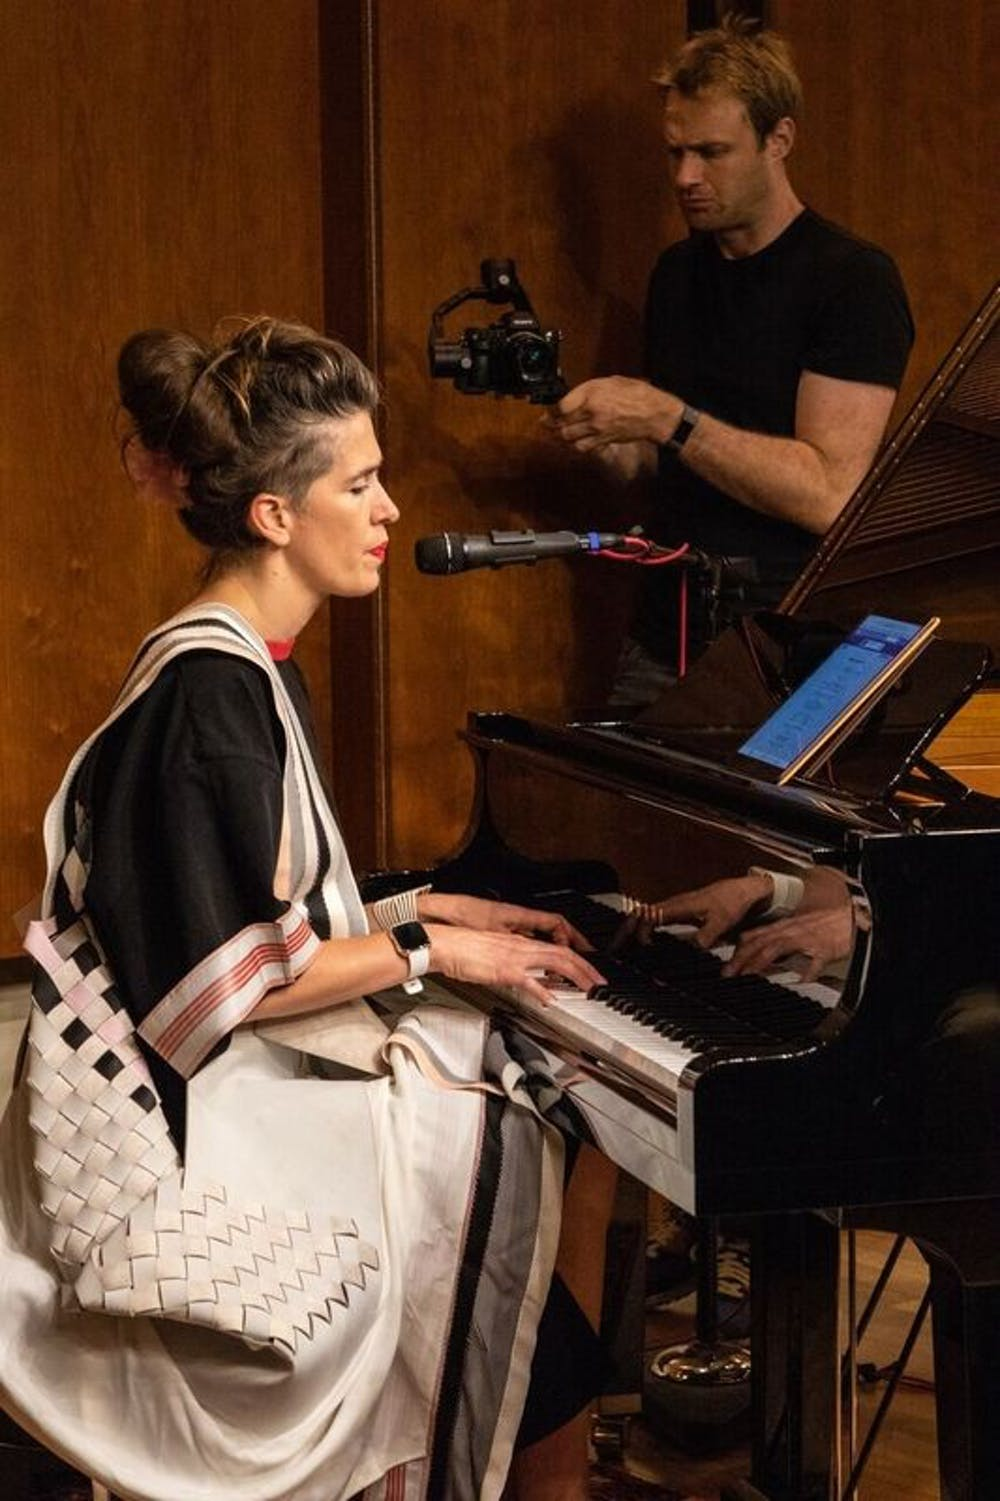 Imogen Heap teams up with University's Audio Technology Department to host private performance